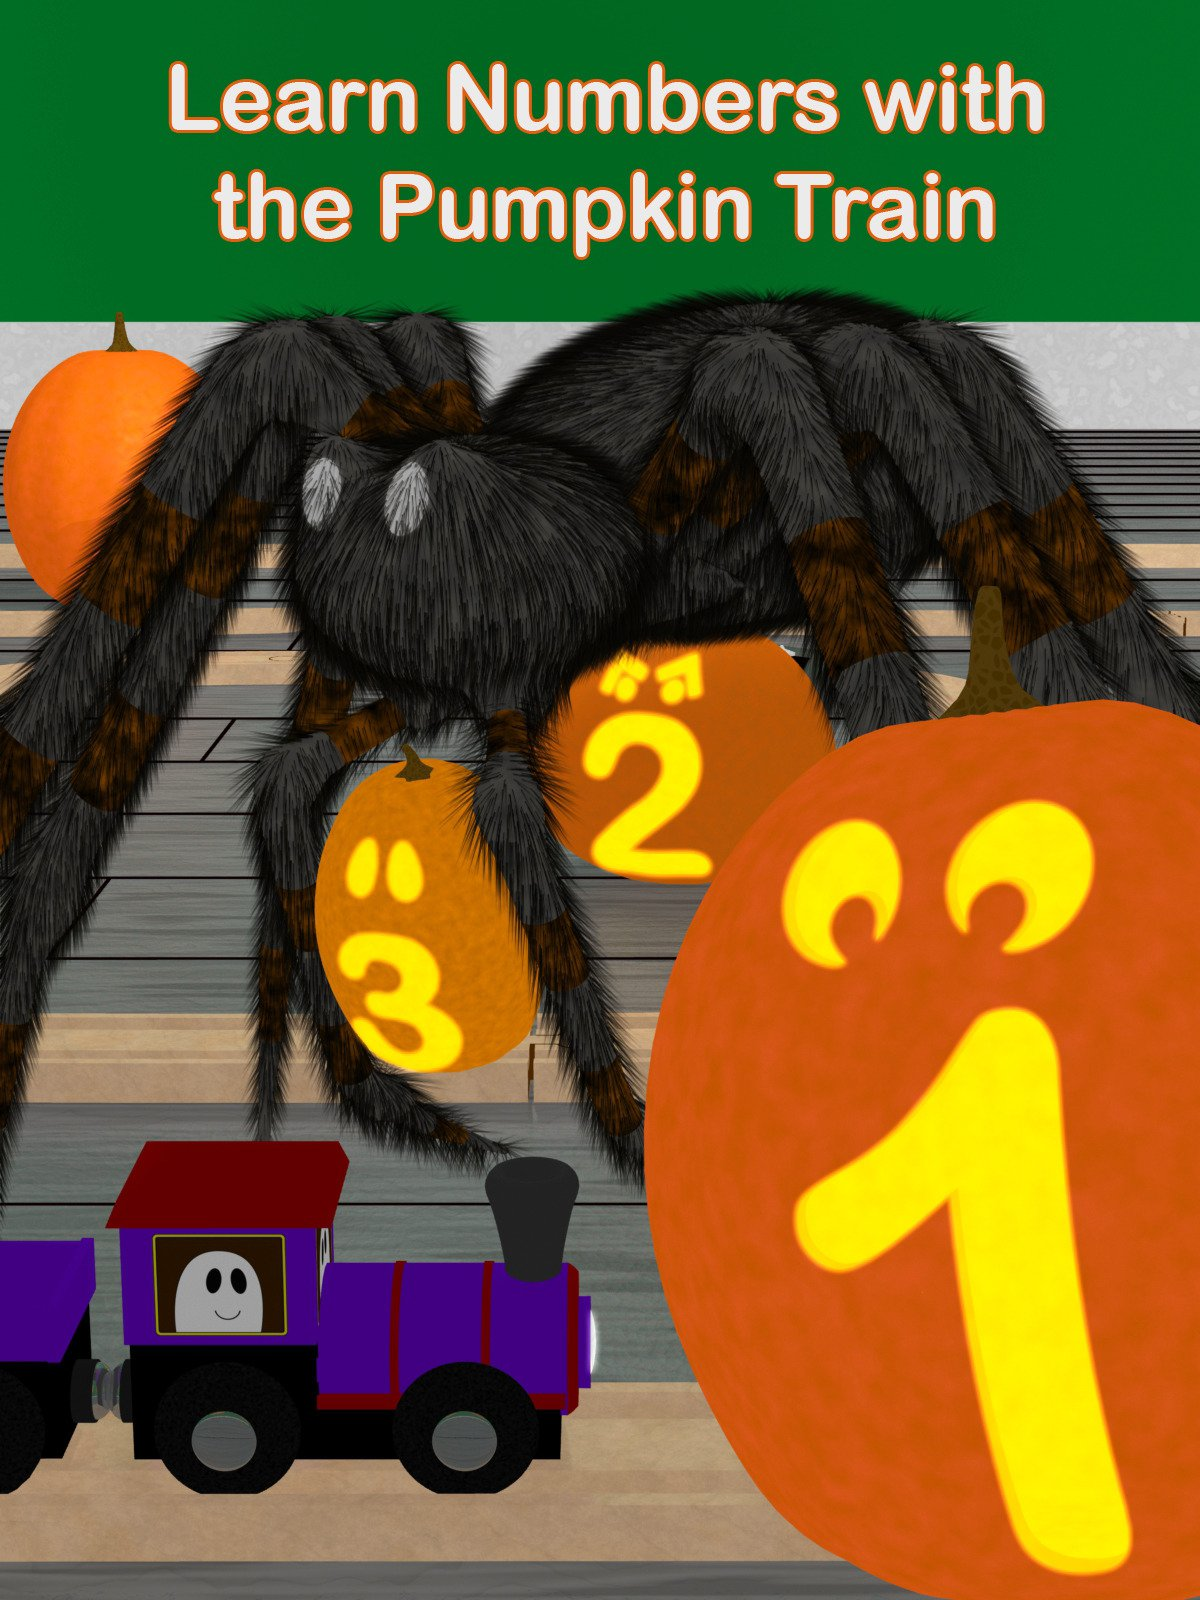 Learn Numbers with the Pumpkin Train